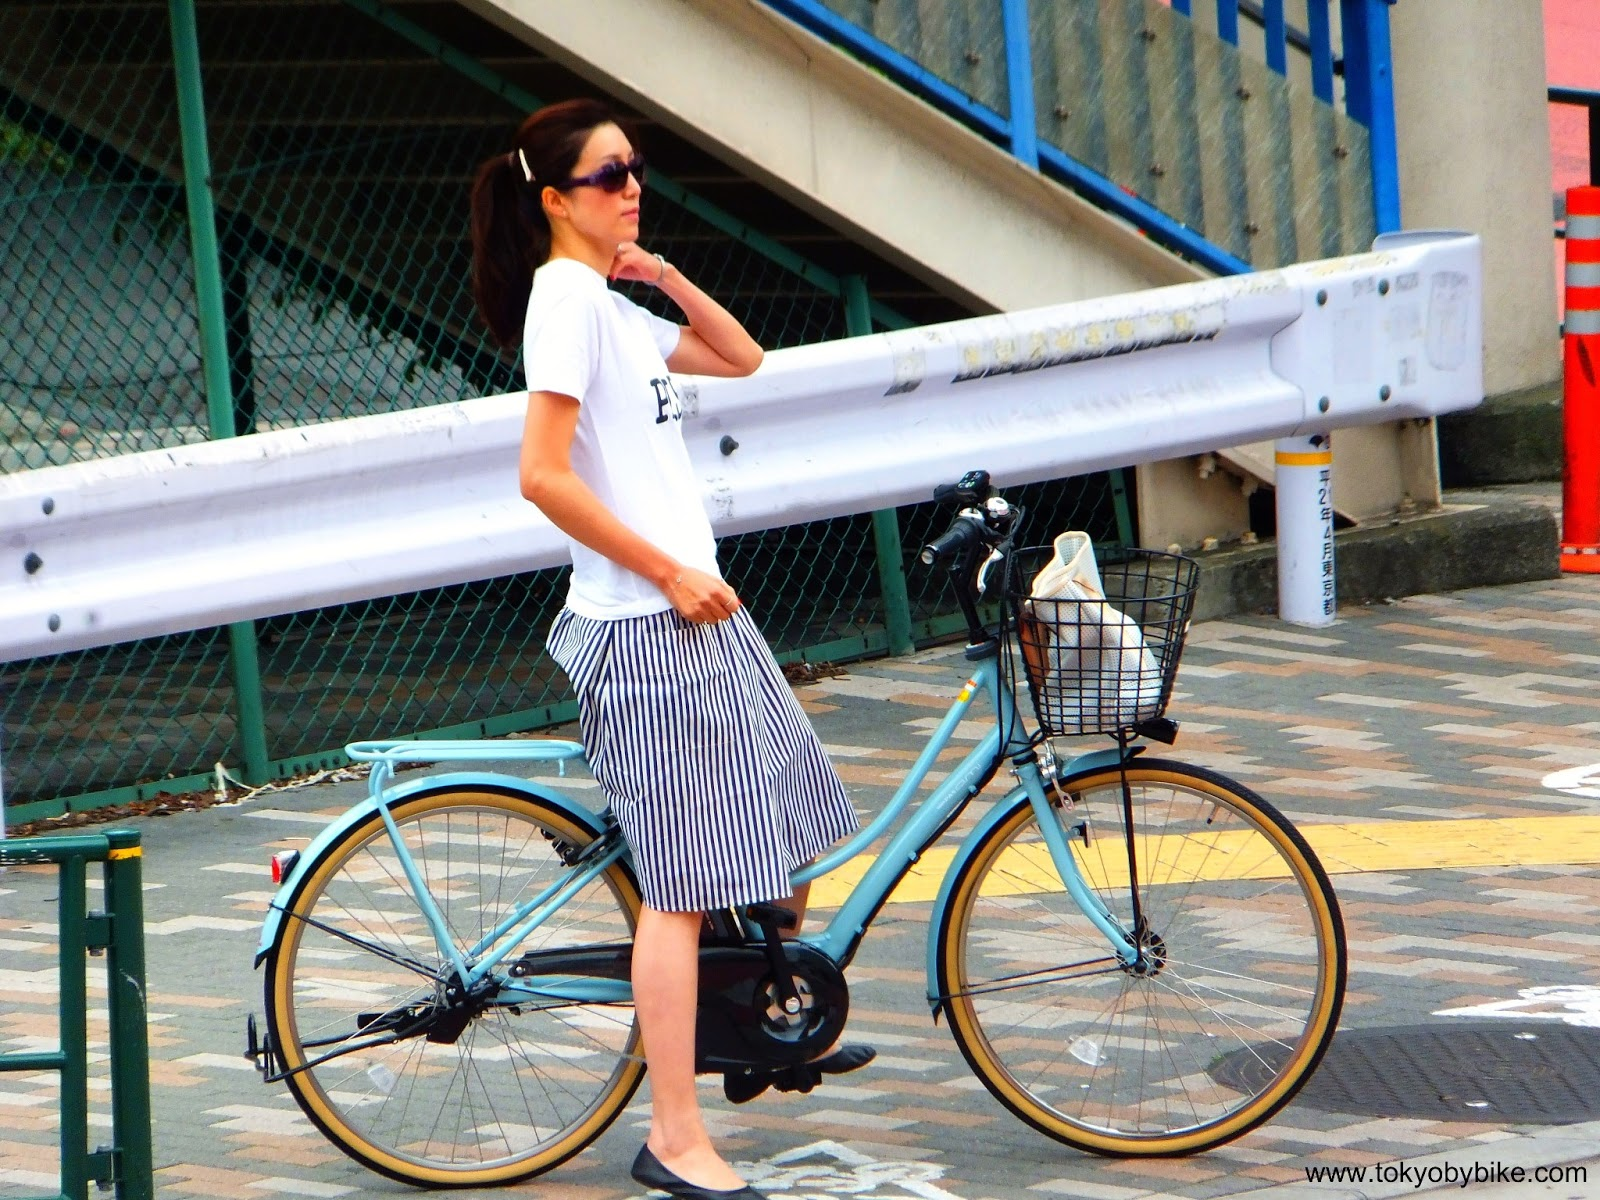 34,247 bicycles left abandoned at Tokyo train stations in 2016